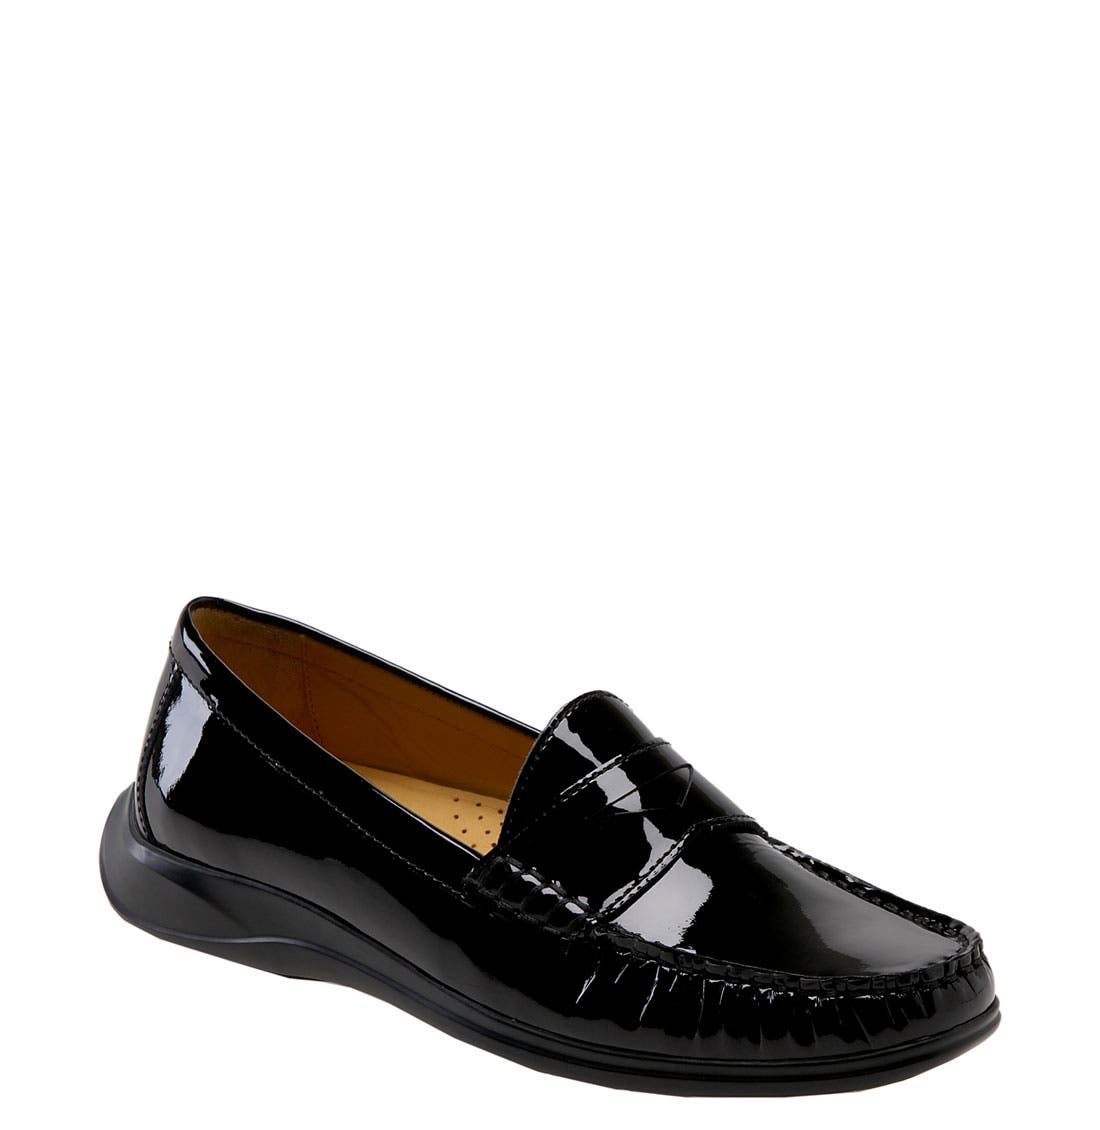 Main Image - Cole Haan 'Air Erika' Penny Loafer